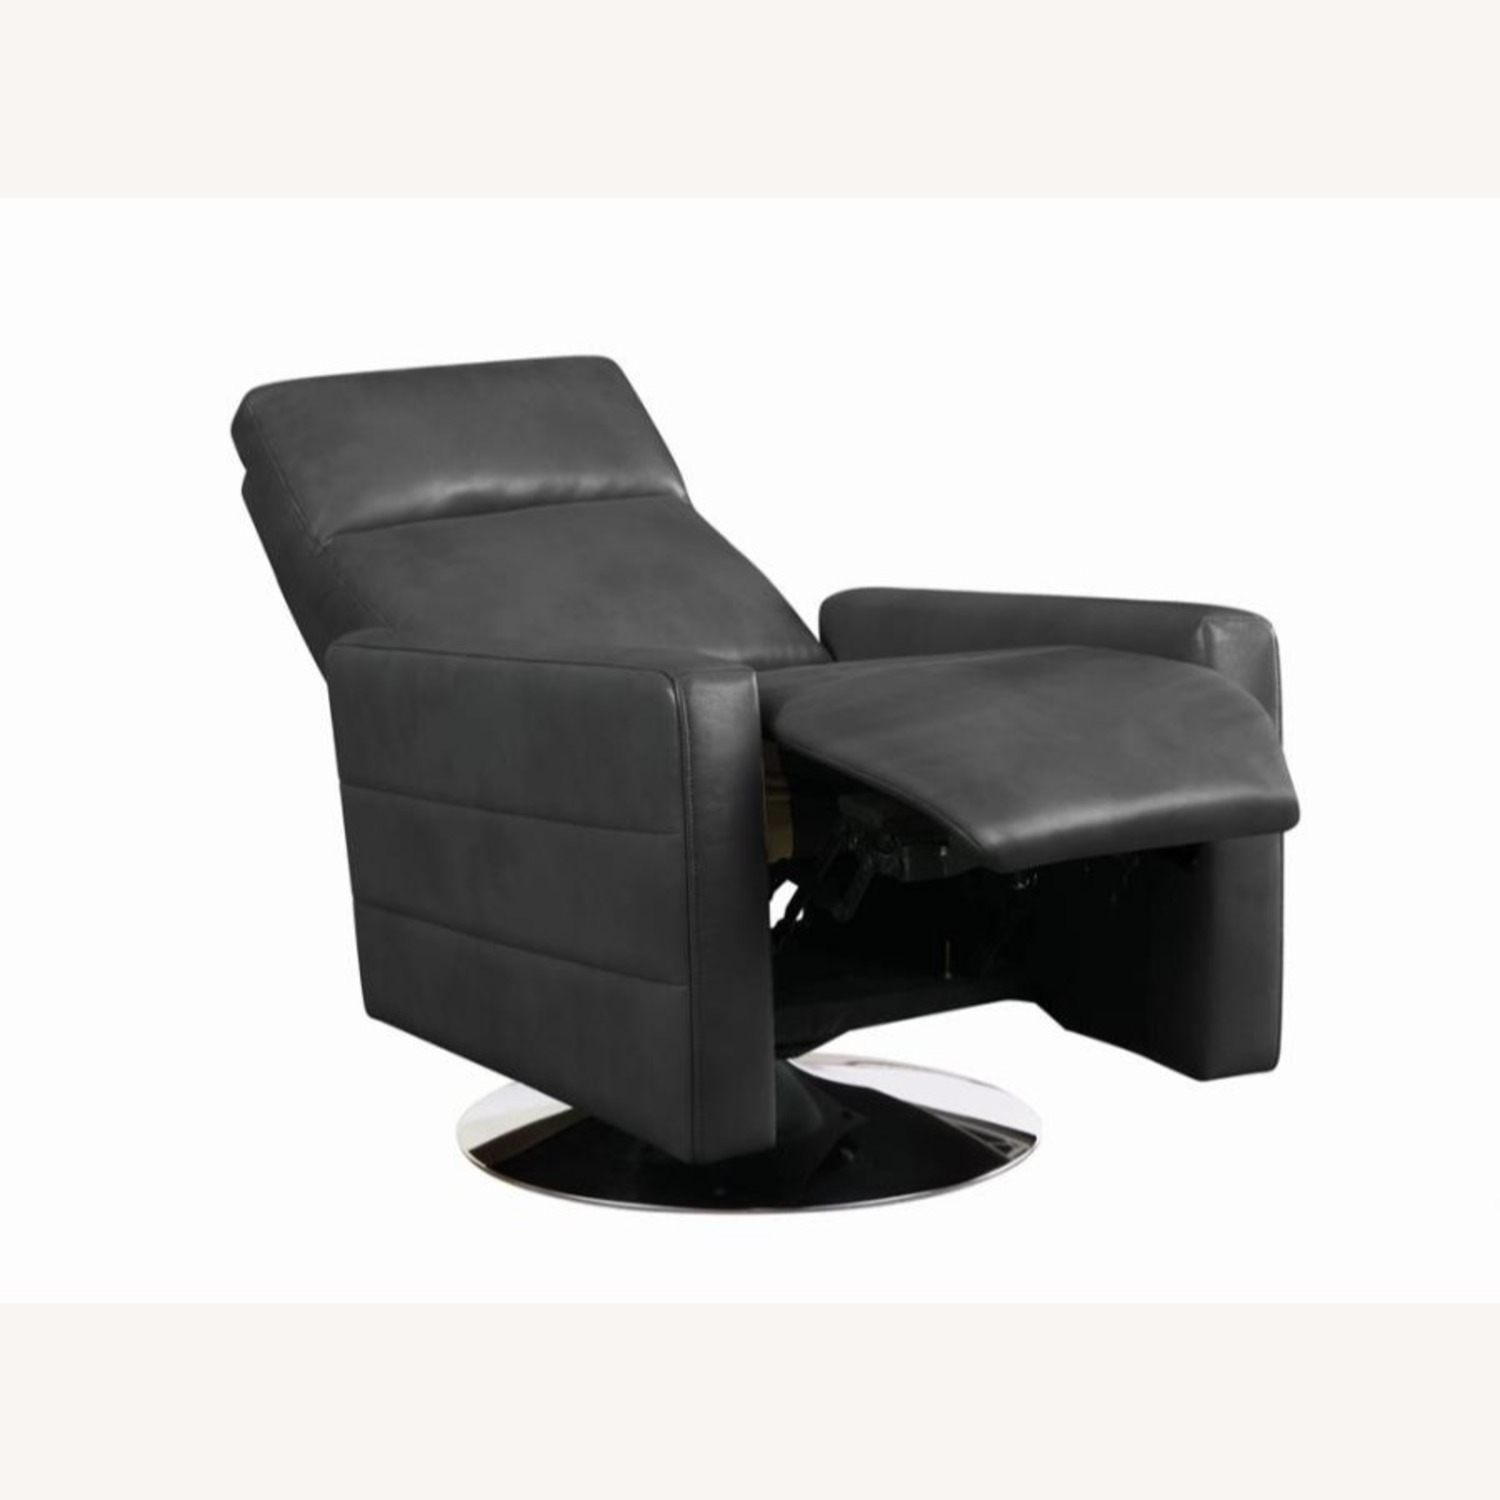 Swivel Recliner In Grey Performance - image-1